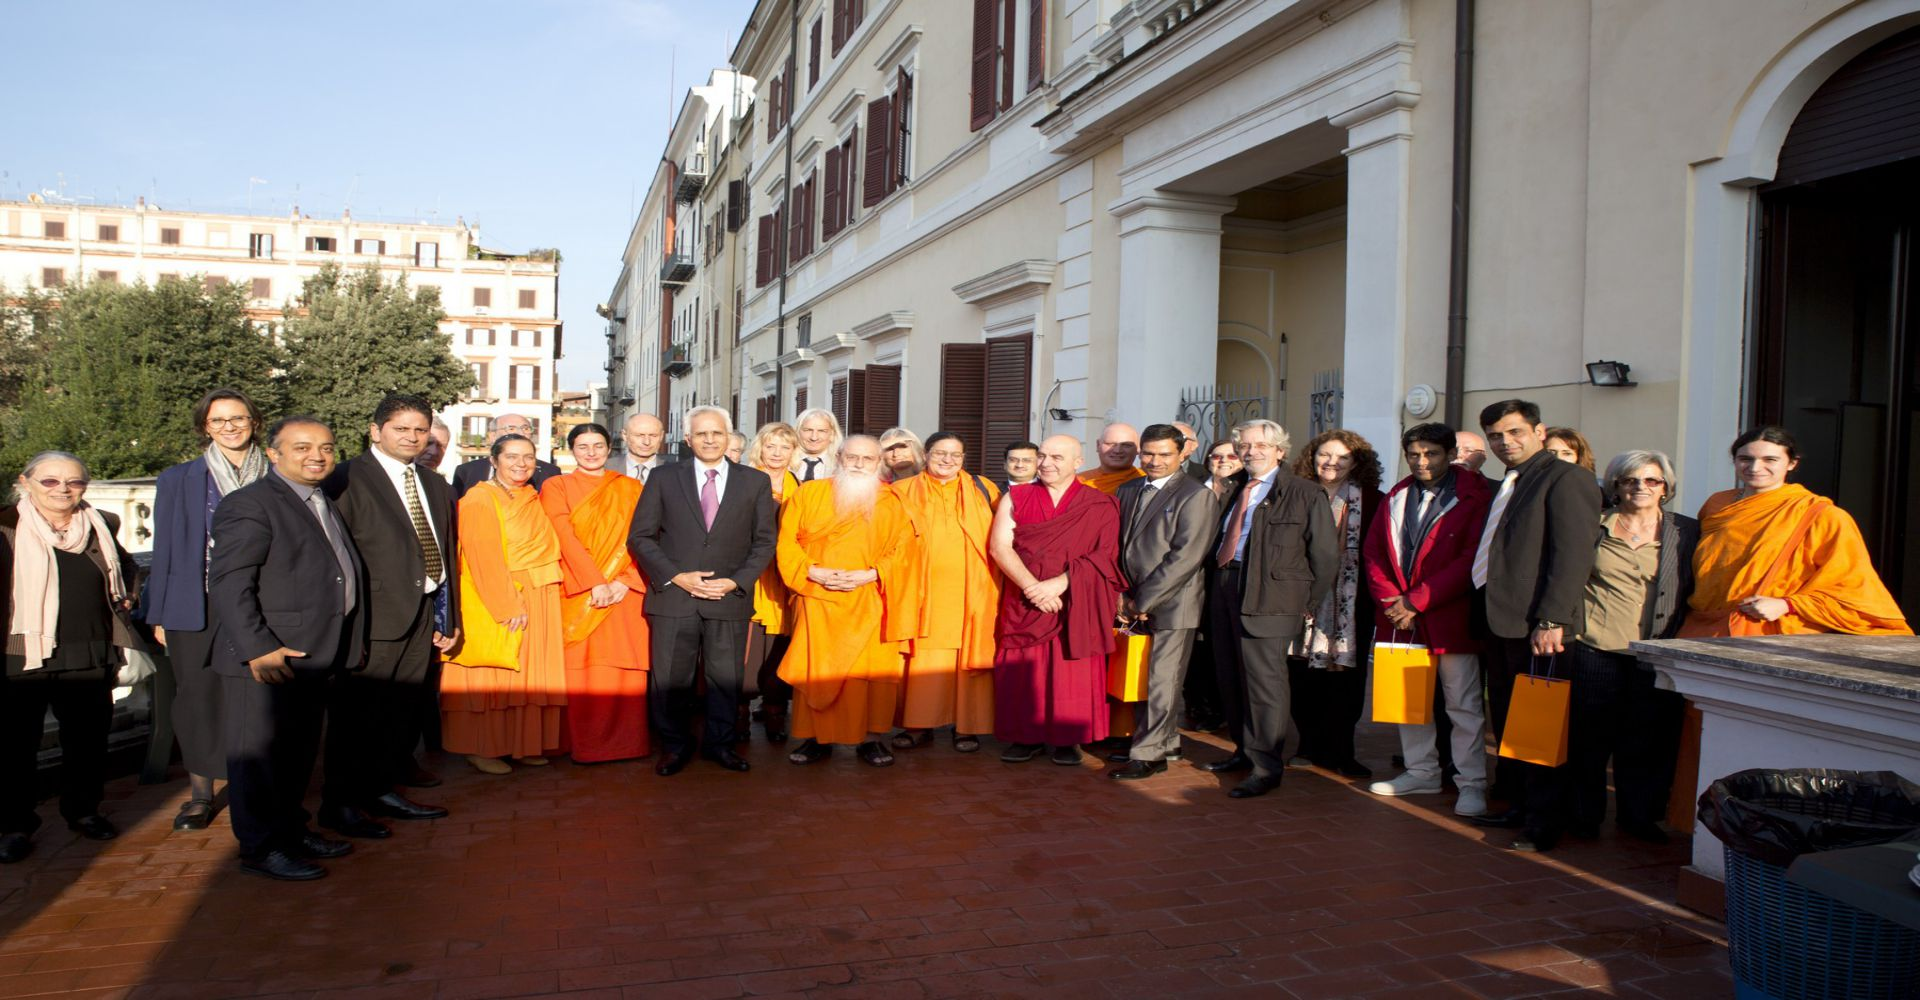 Dipavali all'Ambasciata dell'India a Roma